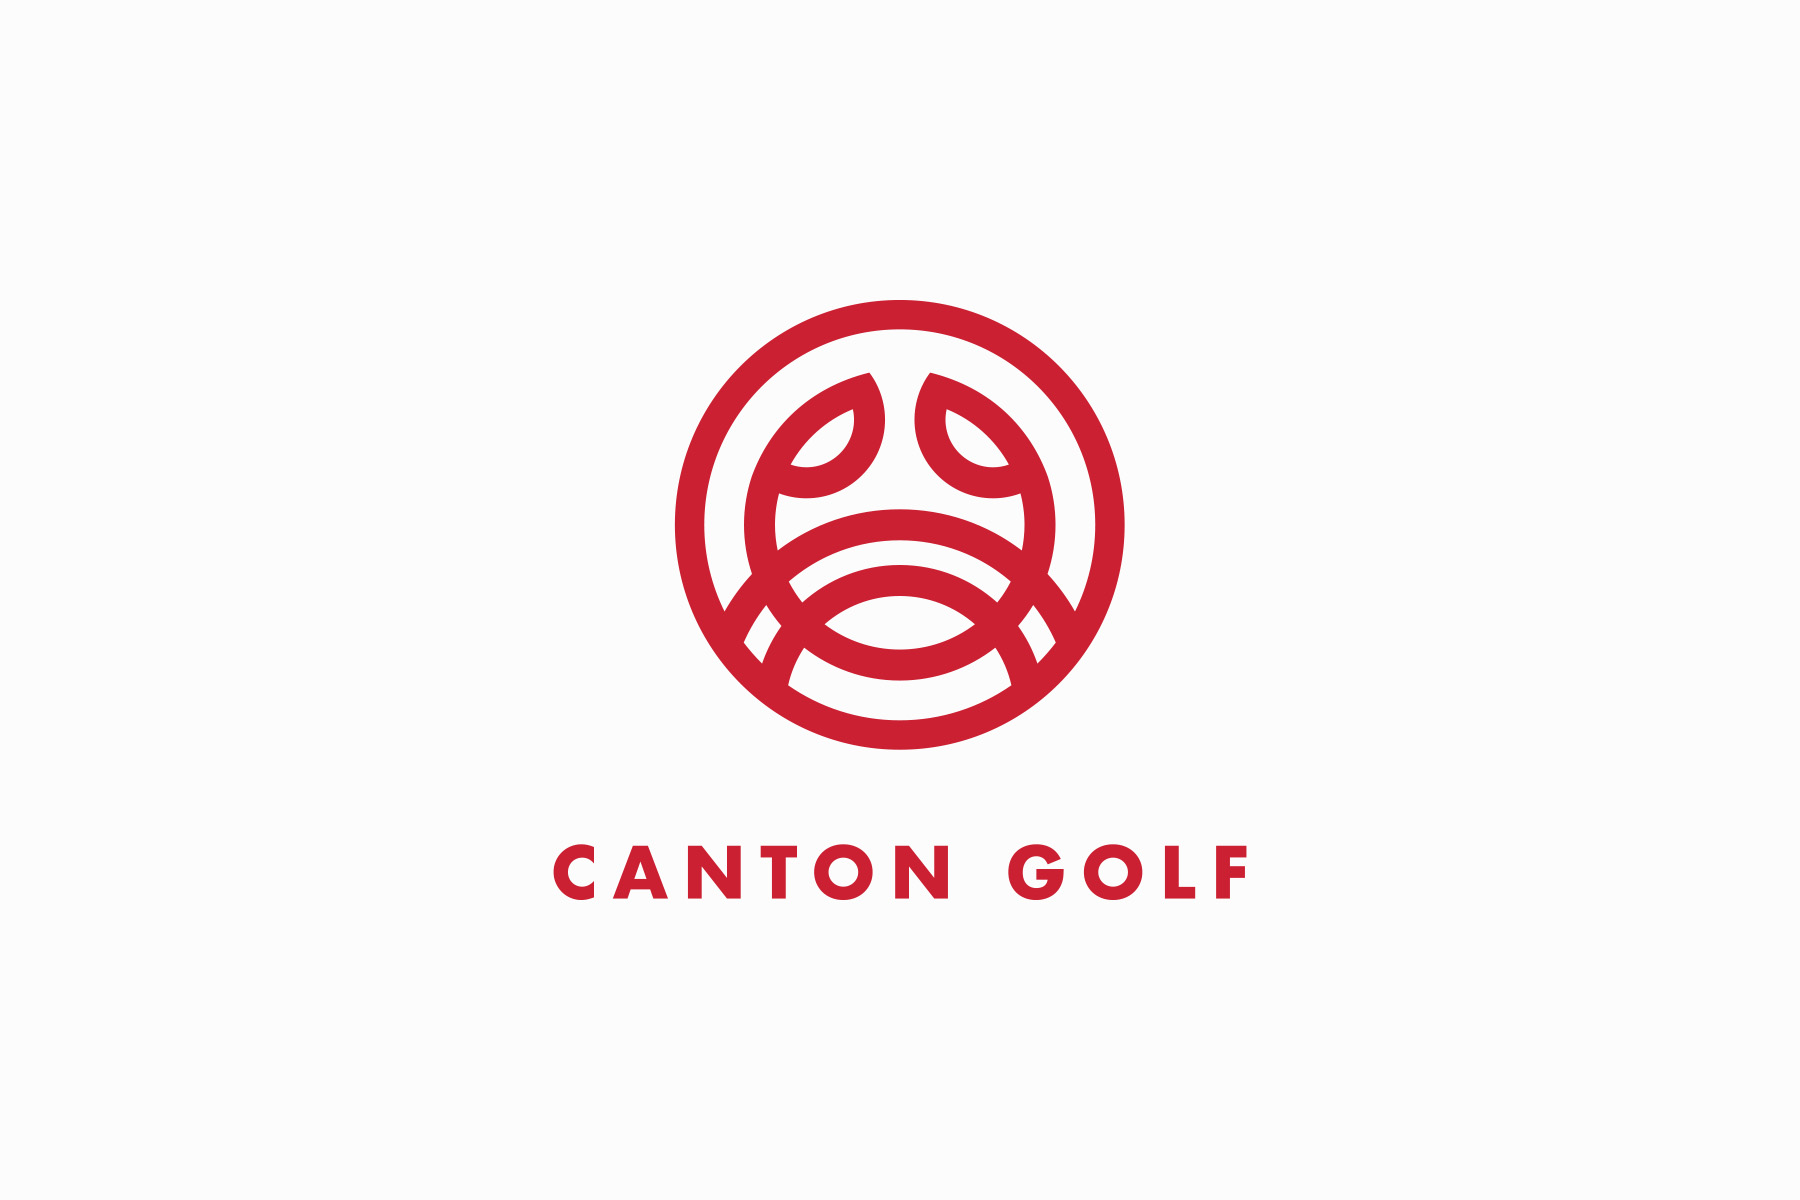 Canton-Golf-Red-Crab-Logo-A.jpg